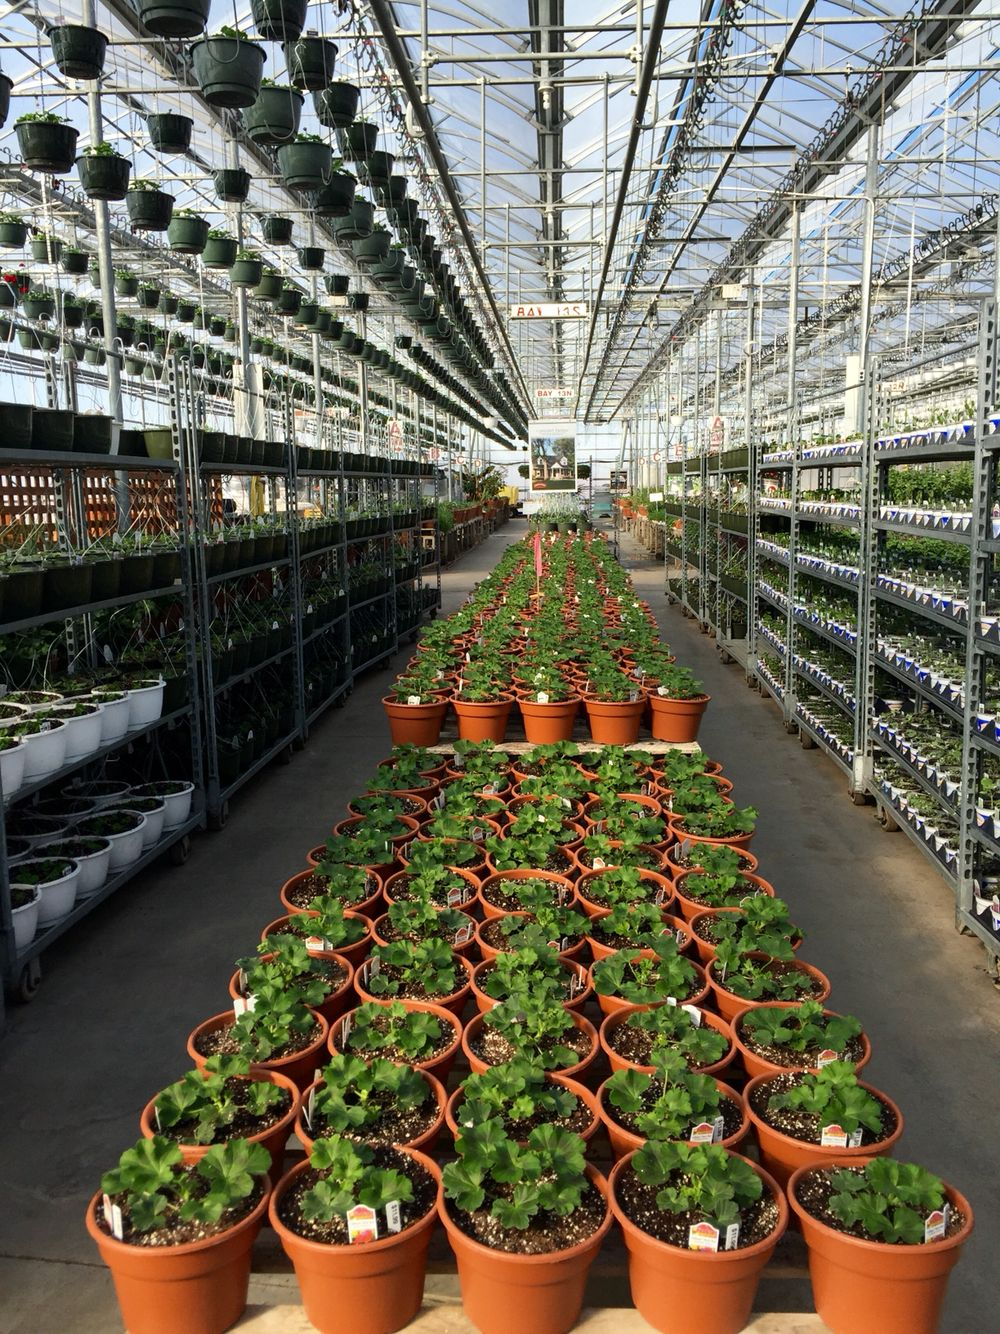 The greenhouses are filling up from top to bottom. Lots and lots of plants in pots!